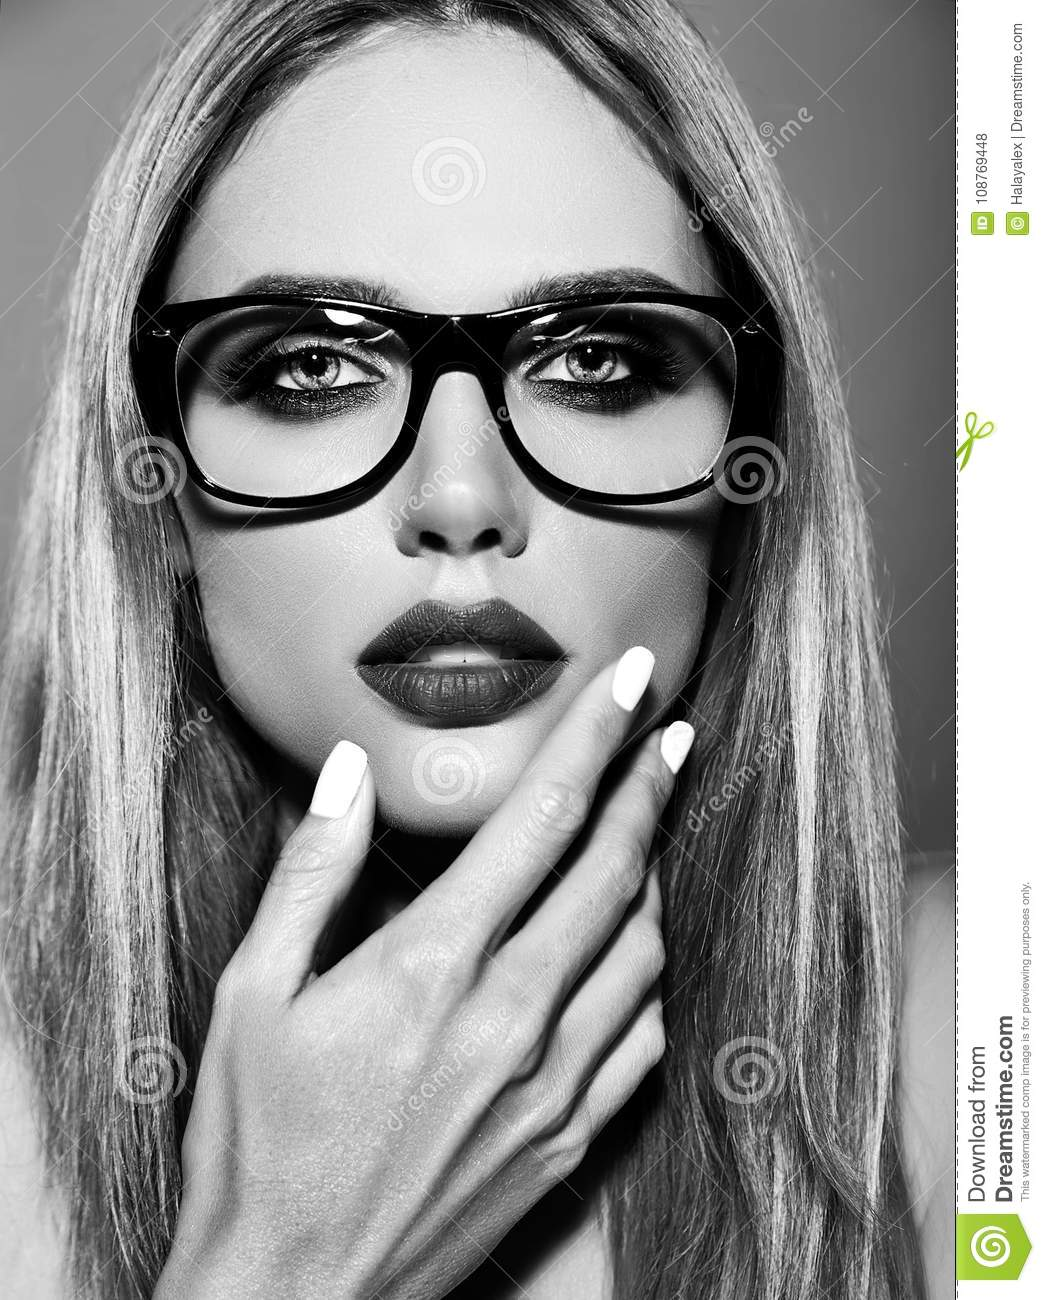 Model with fresh daily makeup with dark lips color and clean healthy skin on red background in glasses